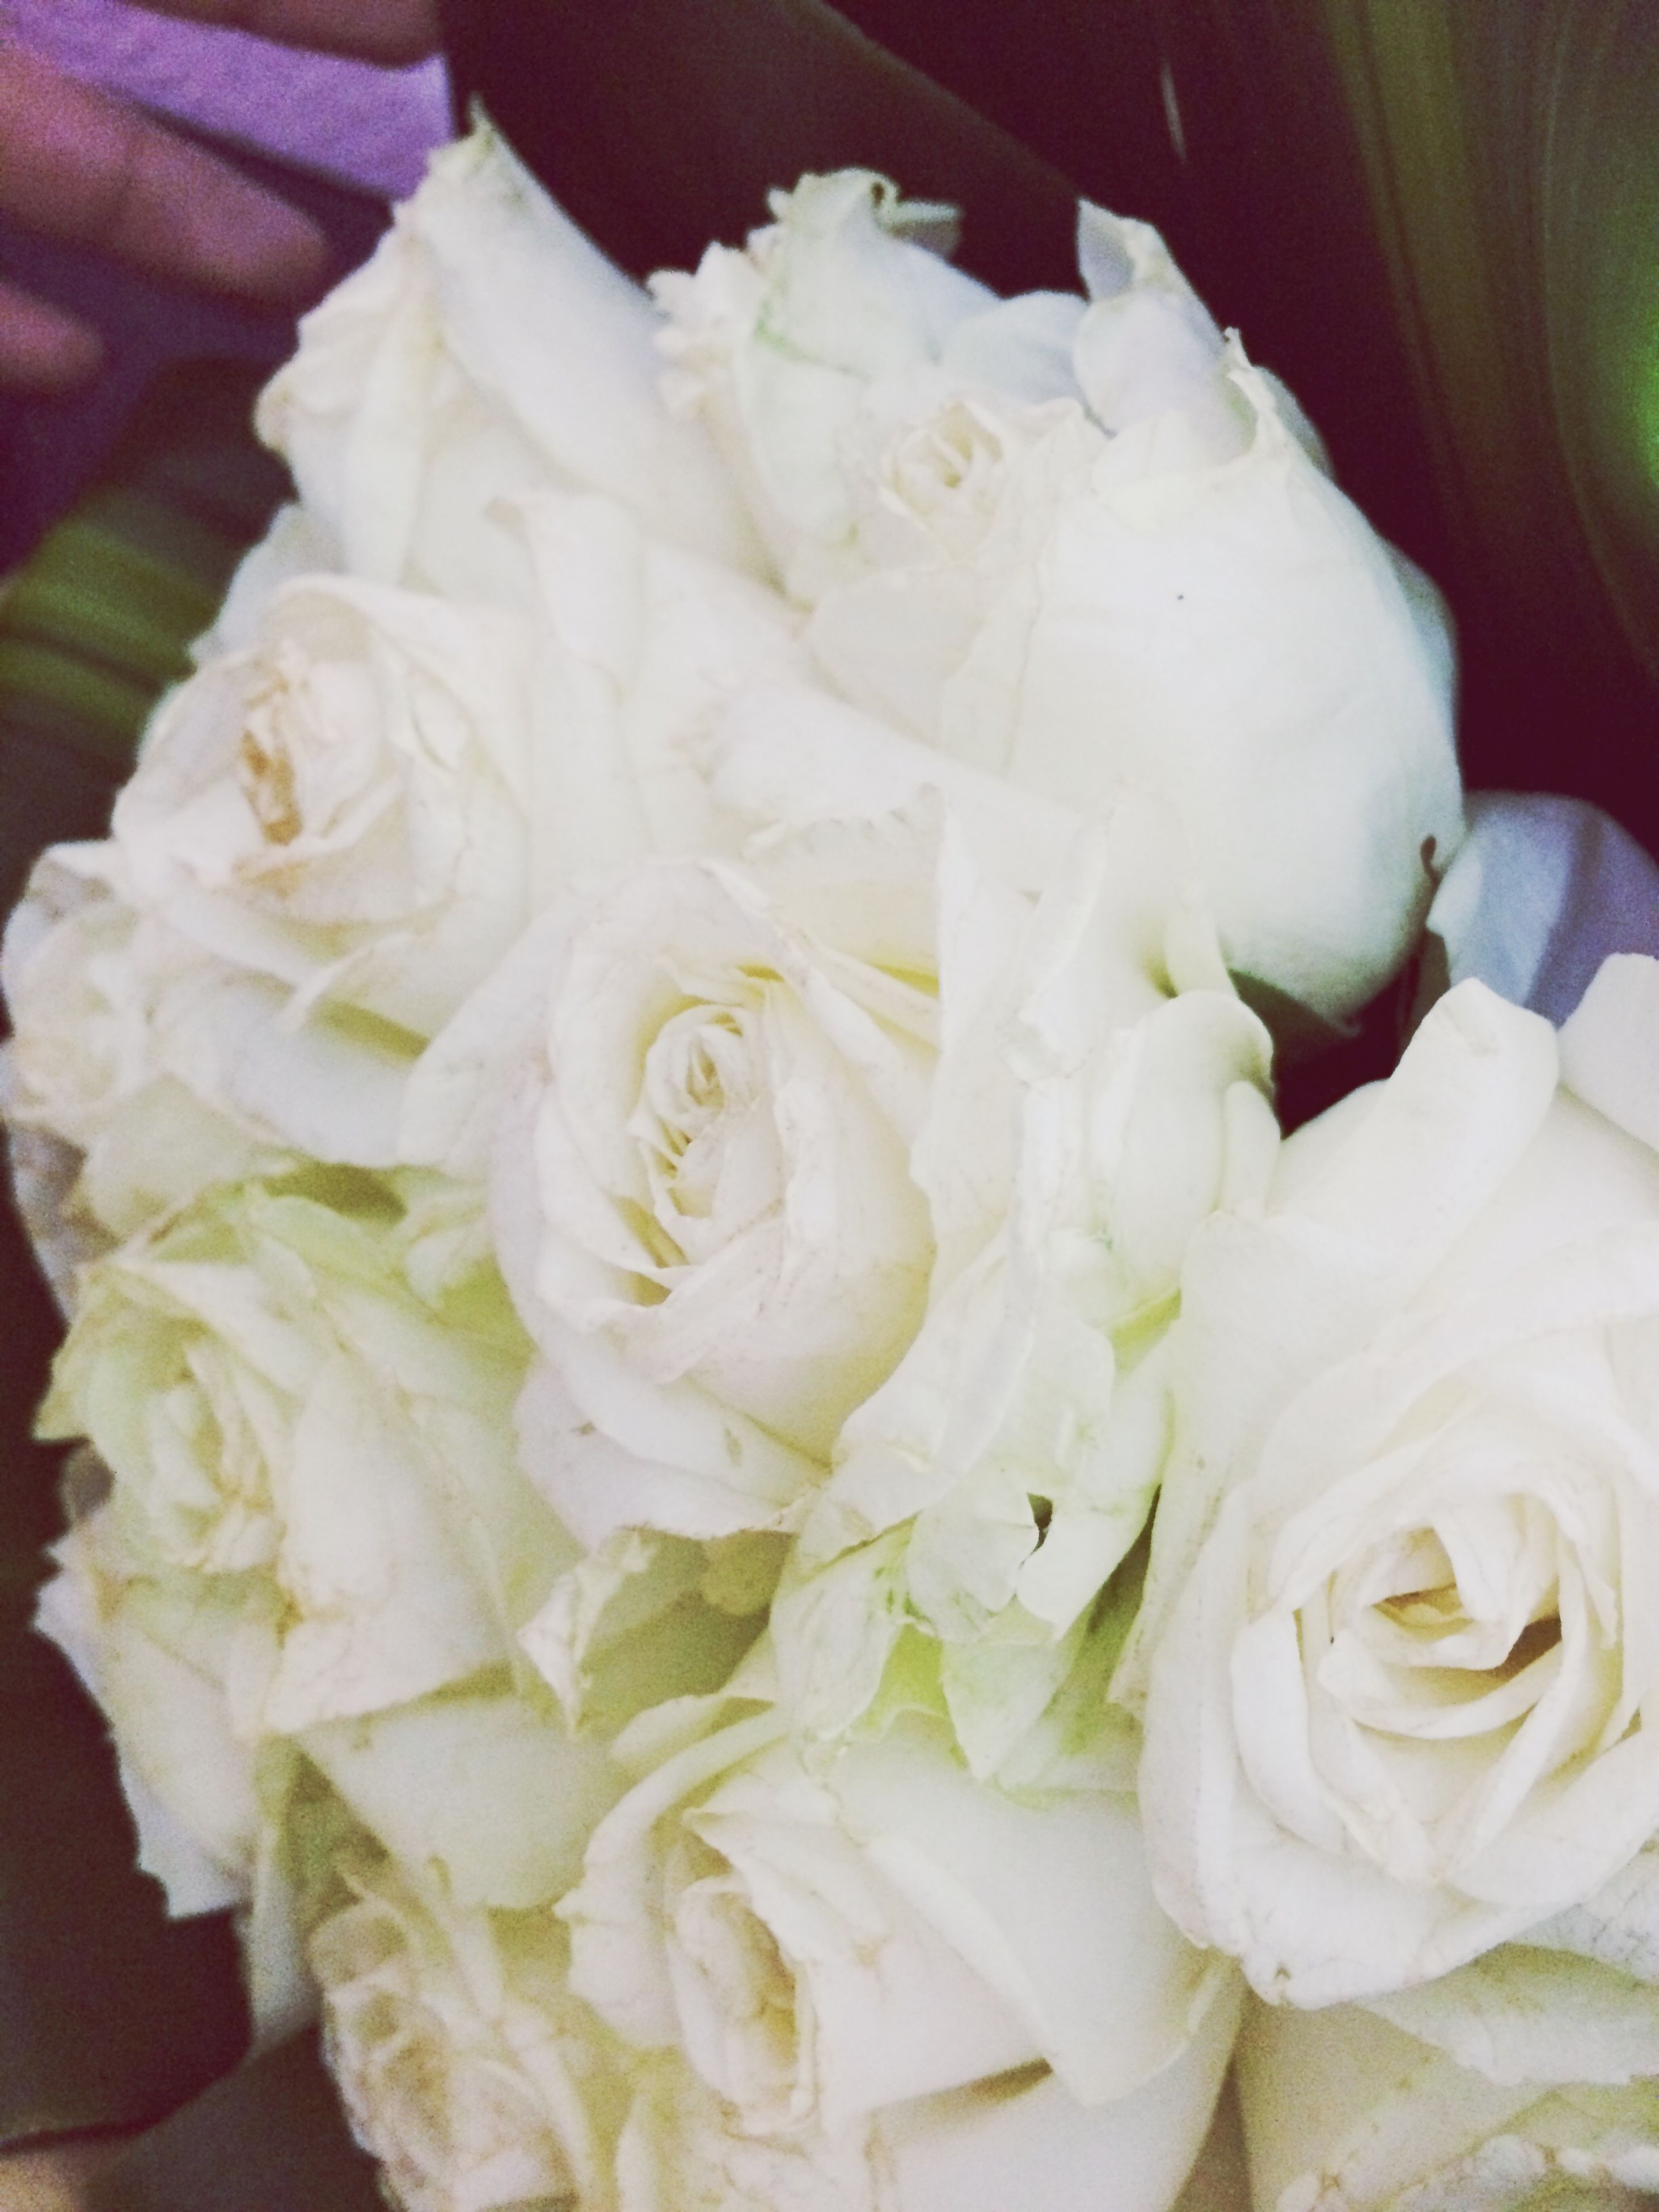 freshness, indoors, flower, petal, close-up, rose - flower, white color, fragility, flower head, high angle view, bouquet, food, no people, still life, food and drink, rose, beauty in nature, full frame, white, detail